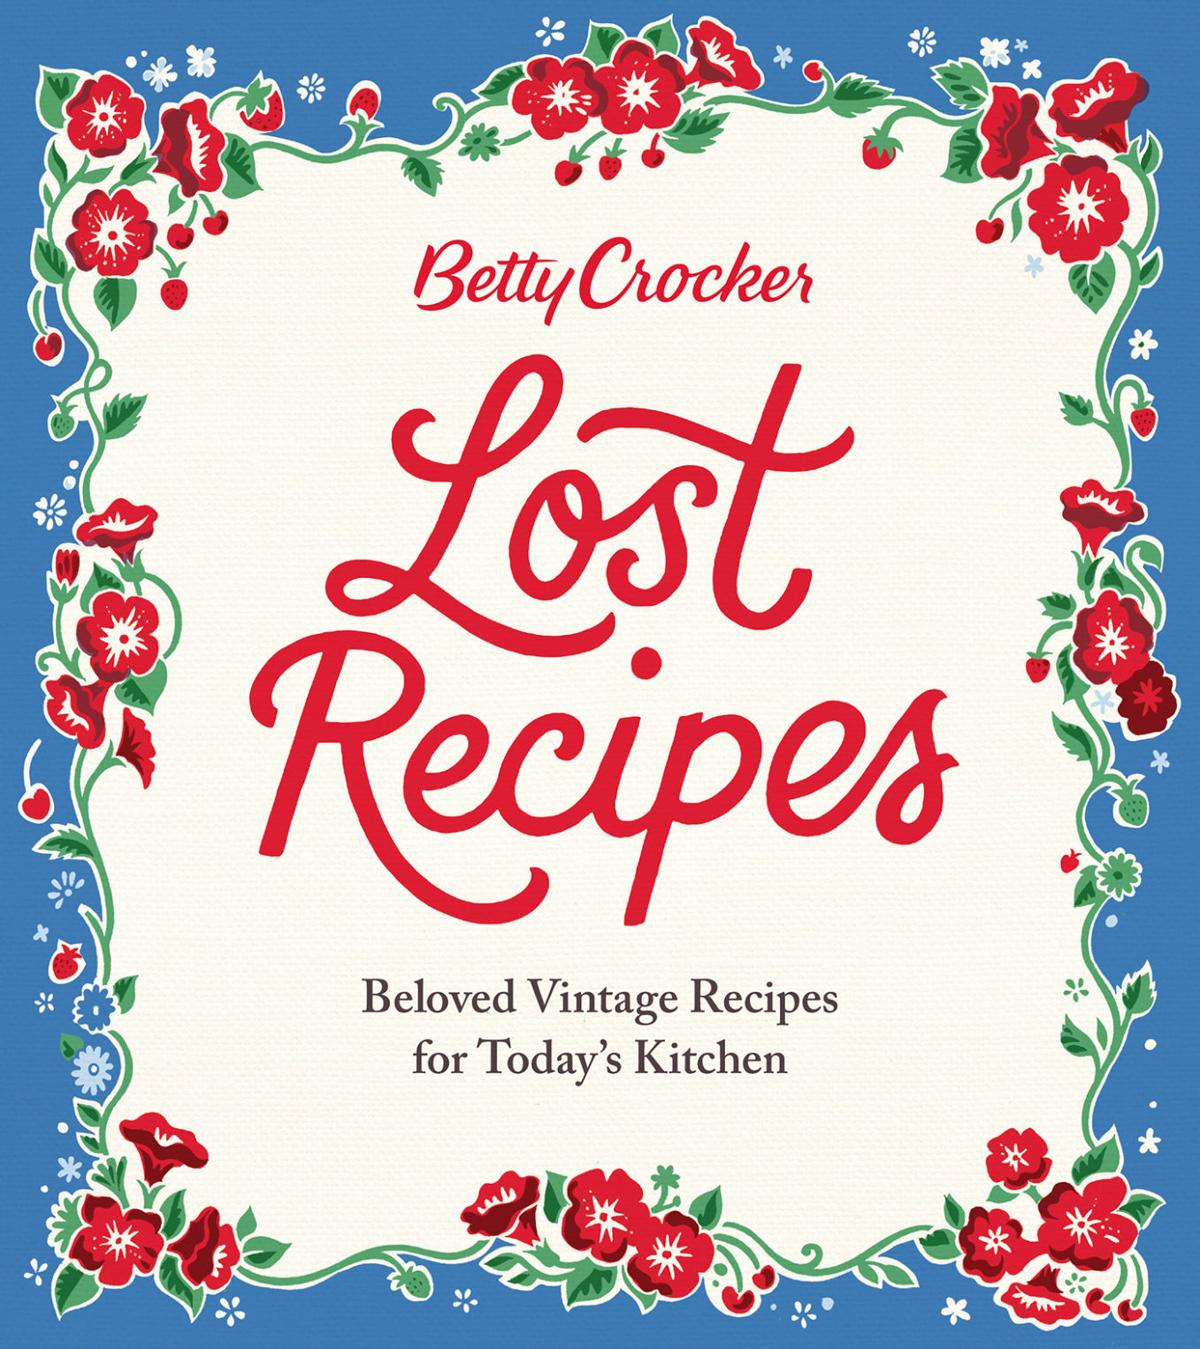 Betty Crocker Lost Recipes Cover.jpg